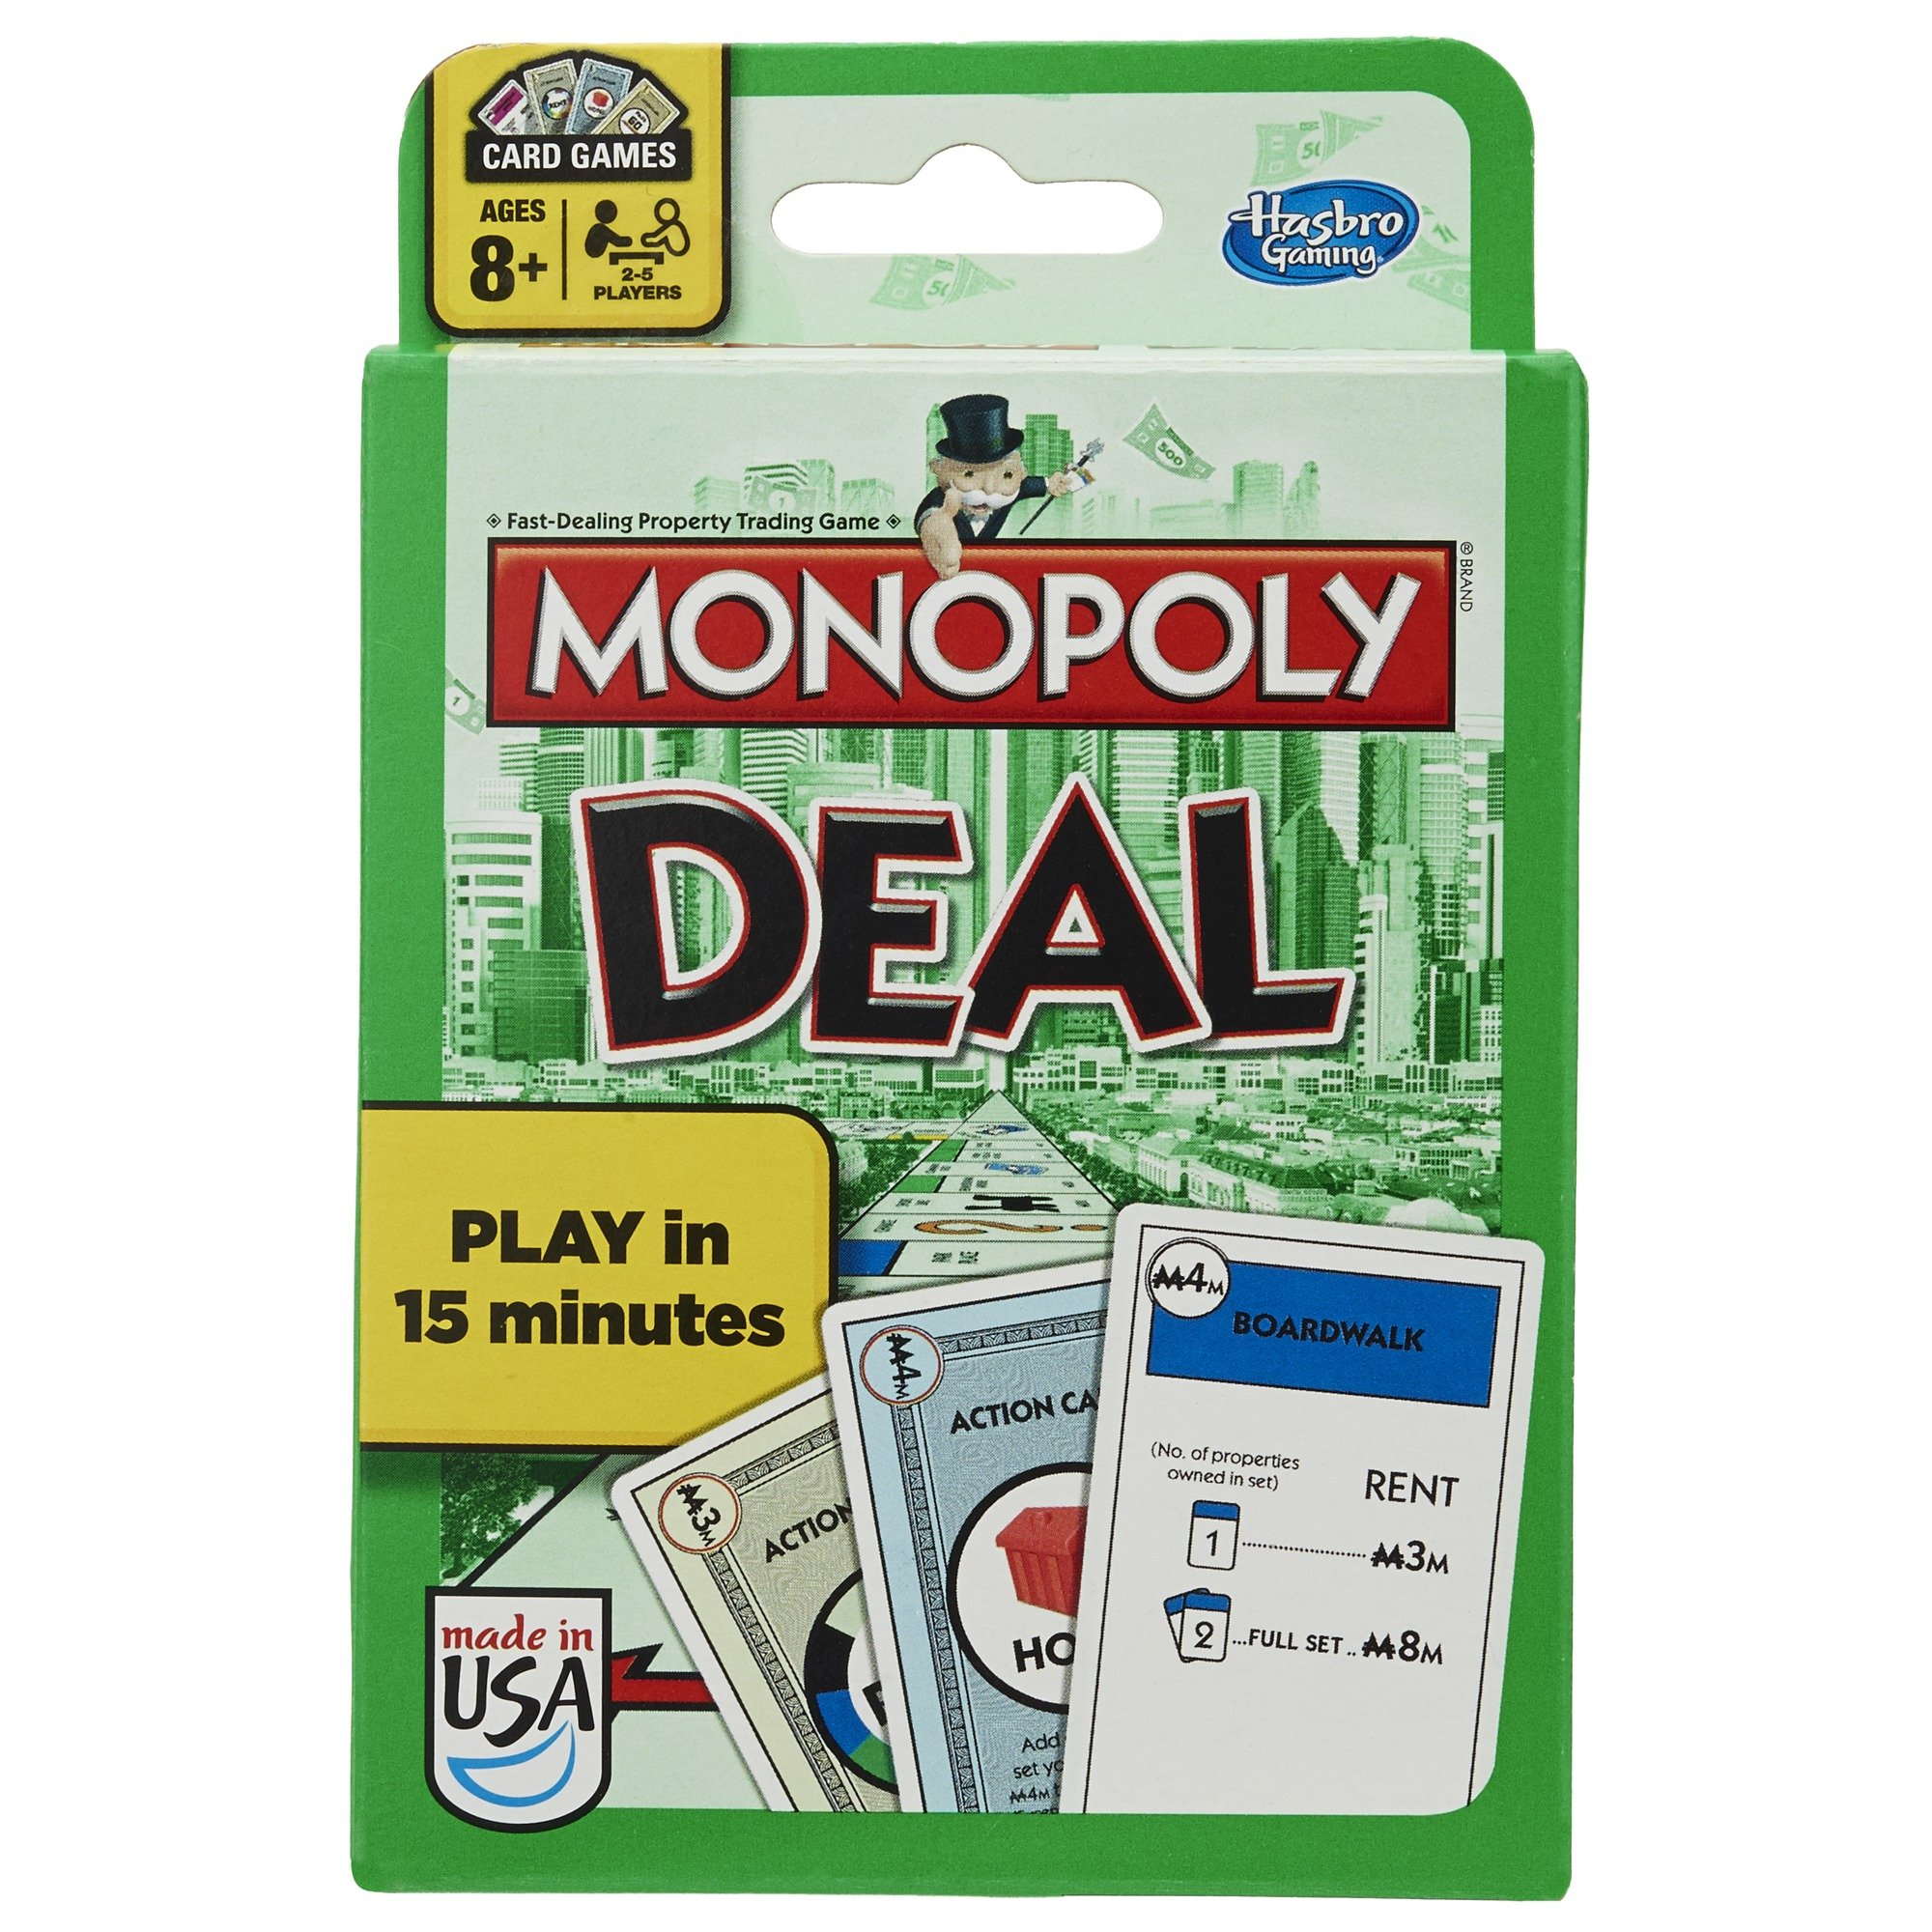 Monopoly Deal Card Gam...